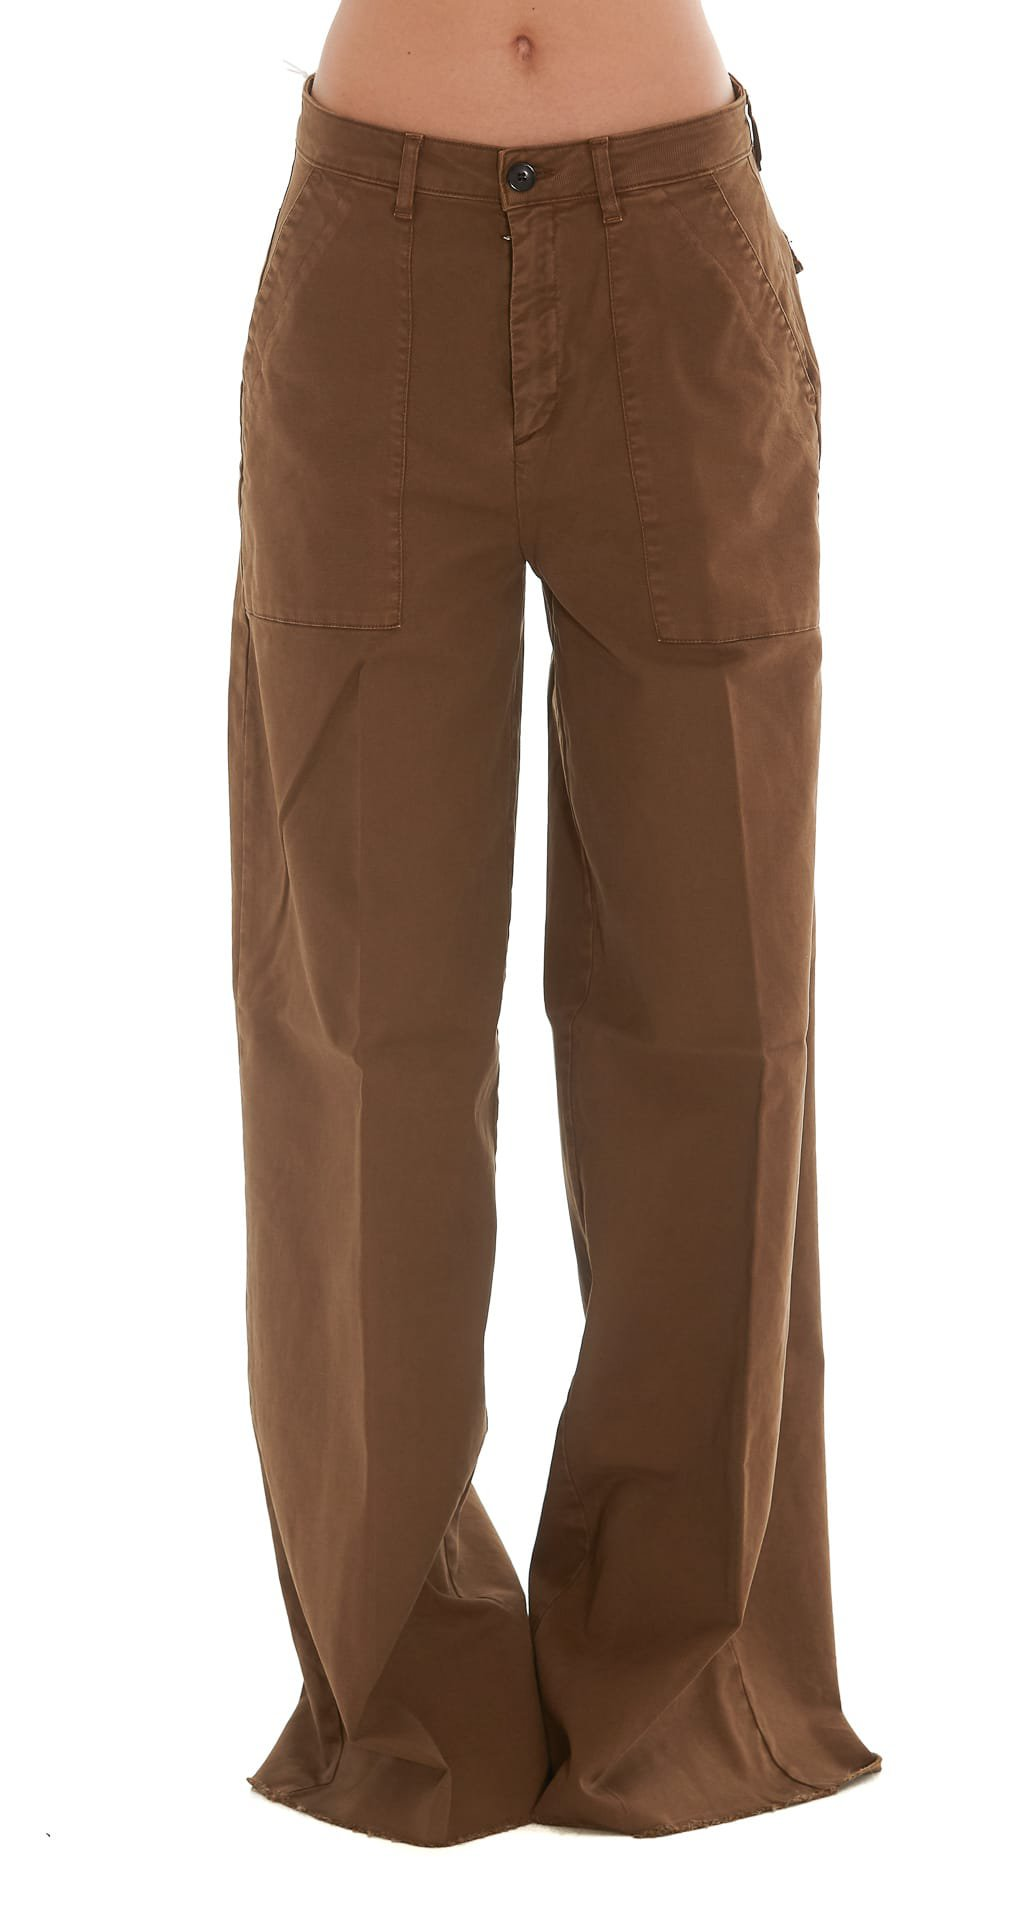 Department 5 Rale Trousers